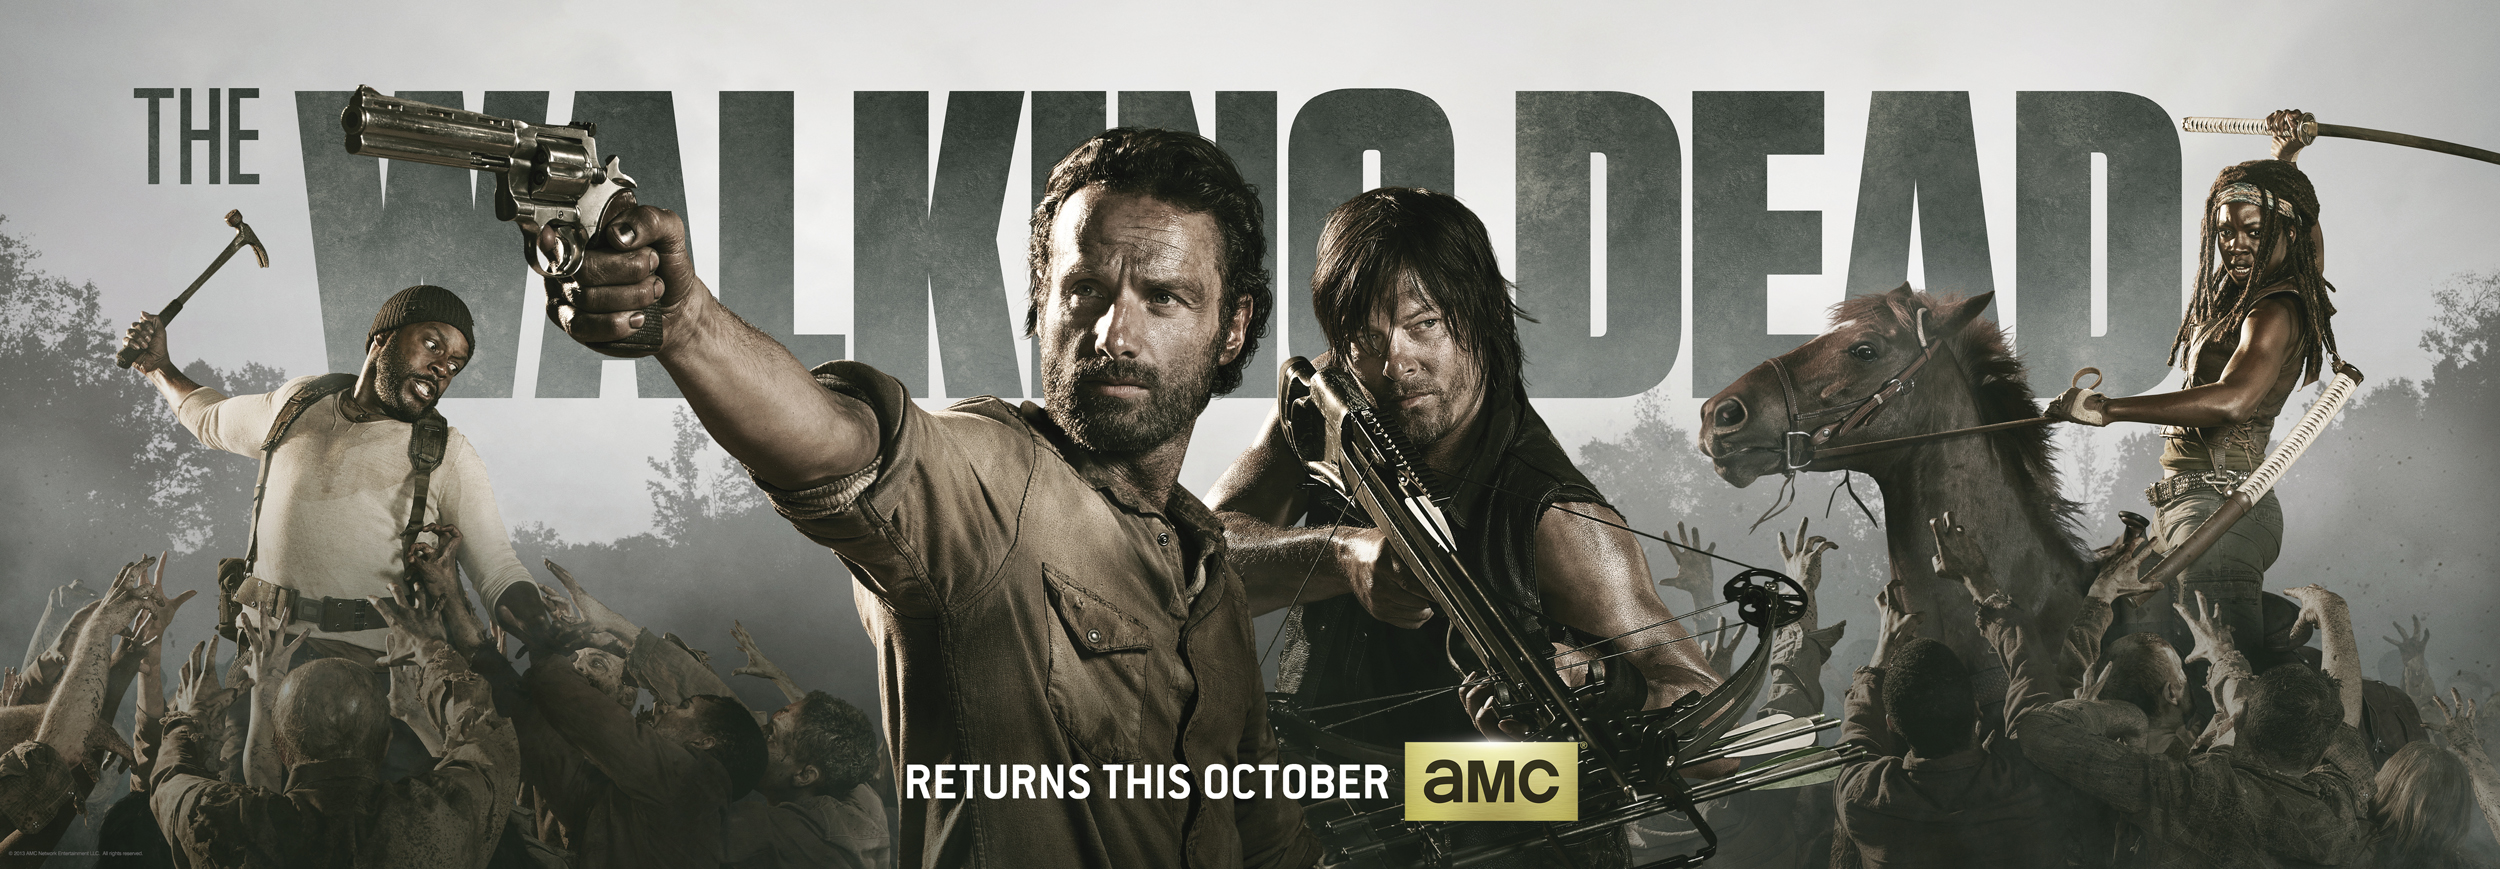 Amazon Prime The Walking Dead Season 4